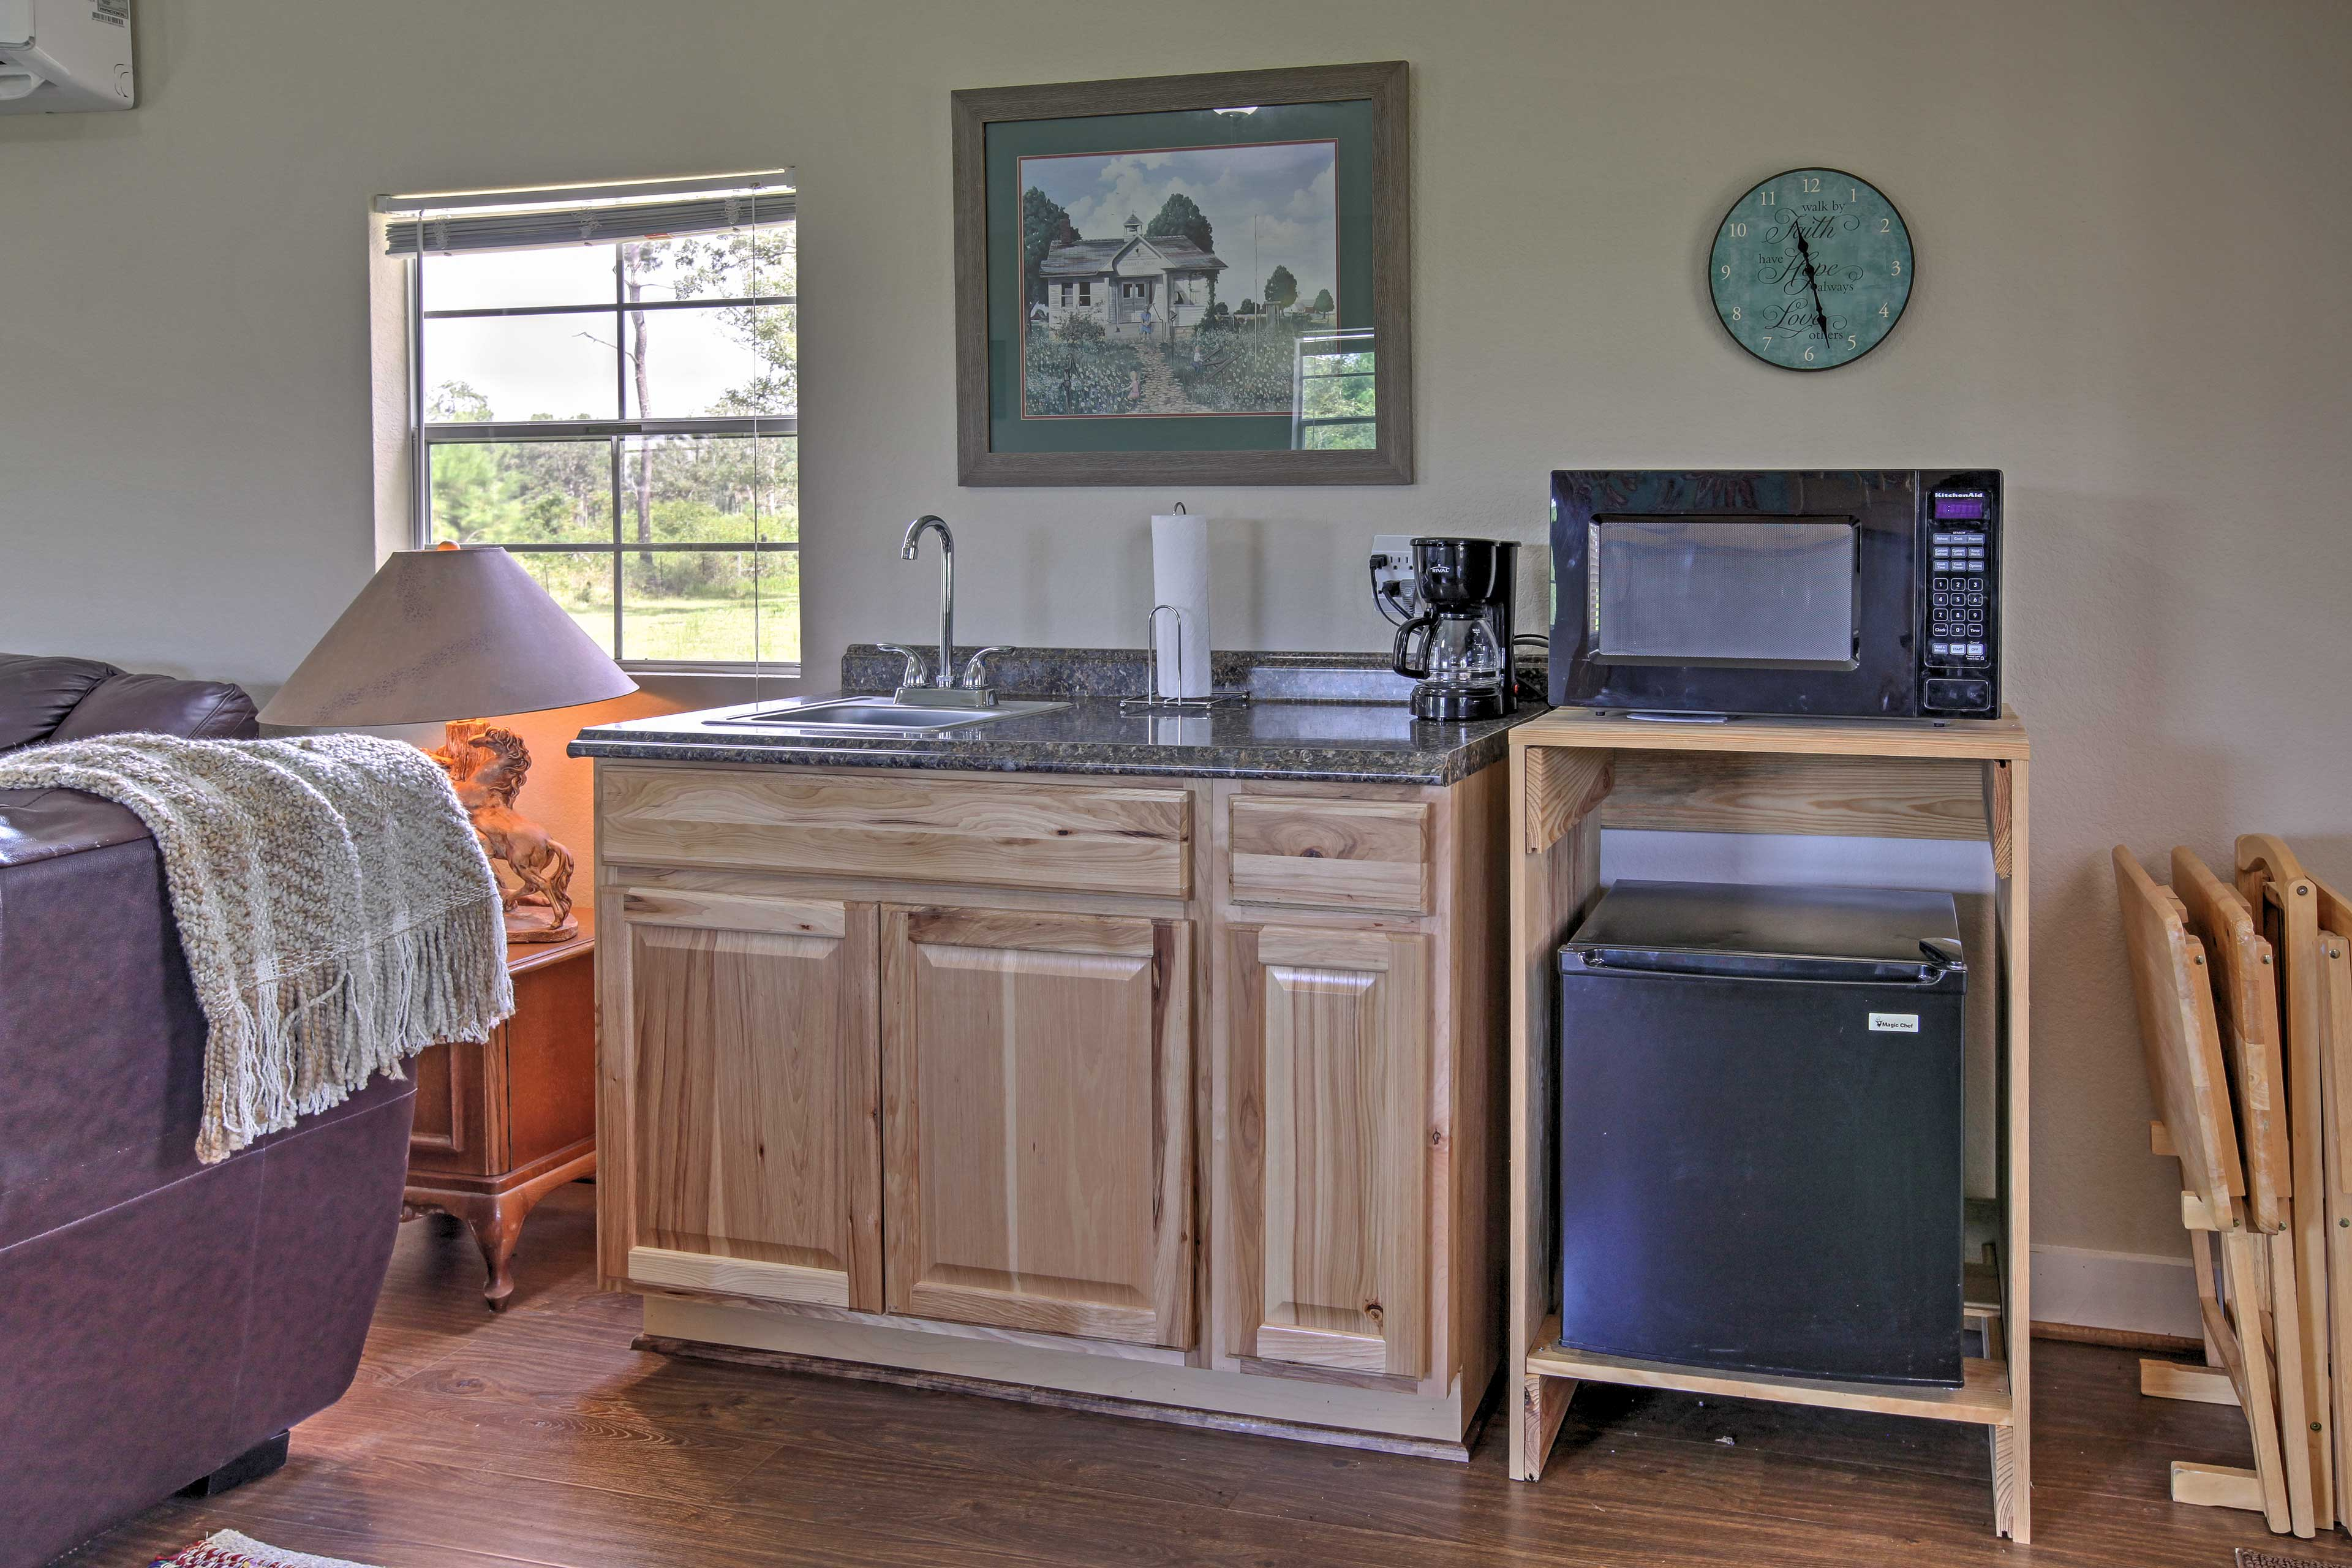 Step inside where you'll be immediately greeted by a well-equipped kitchenette.